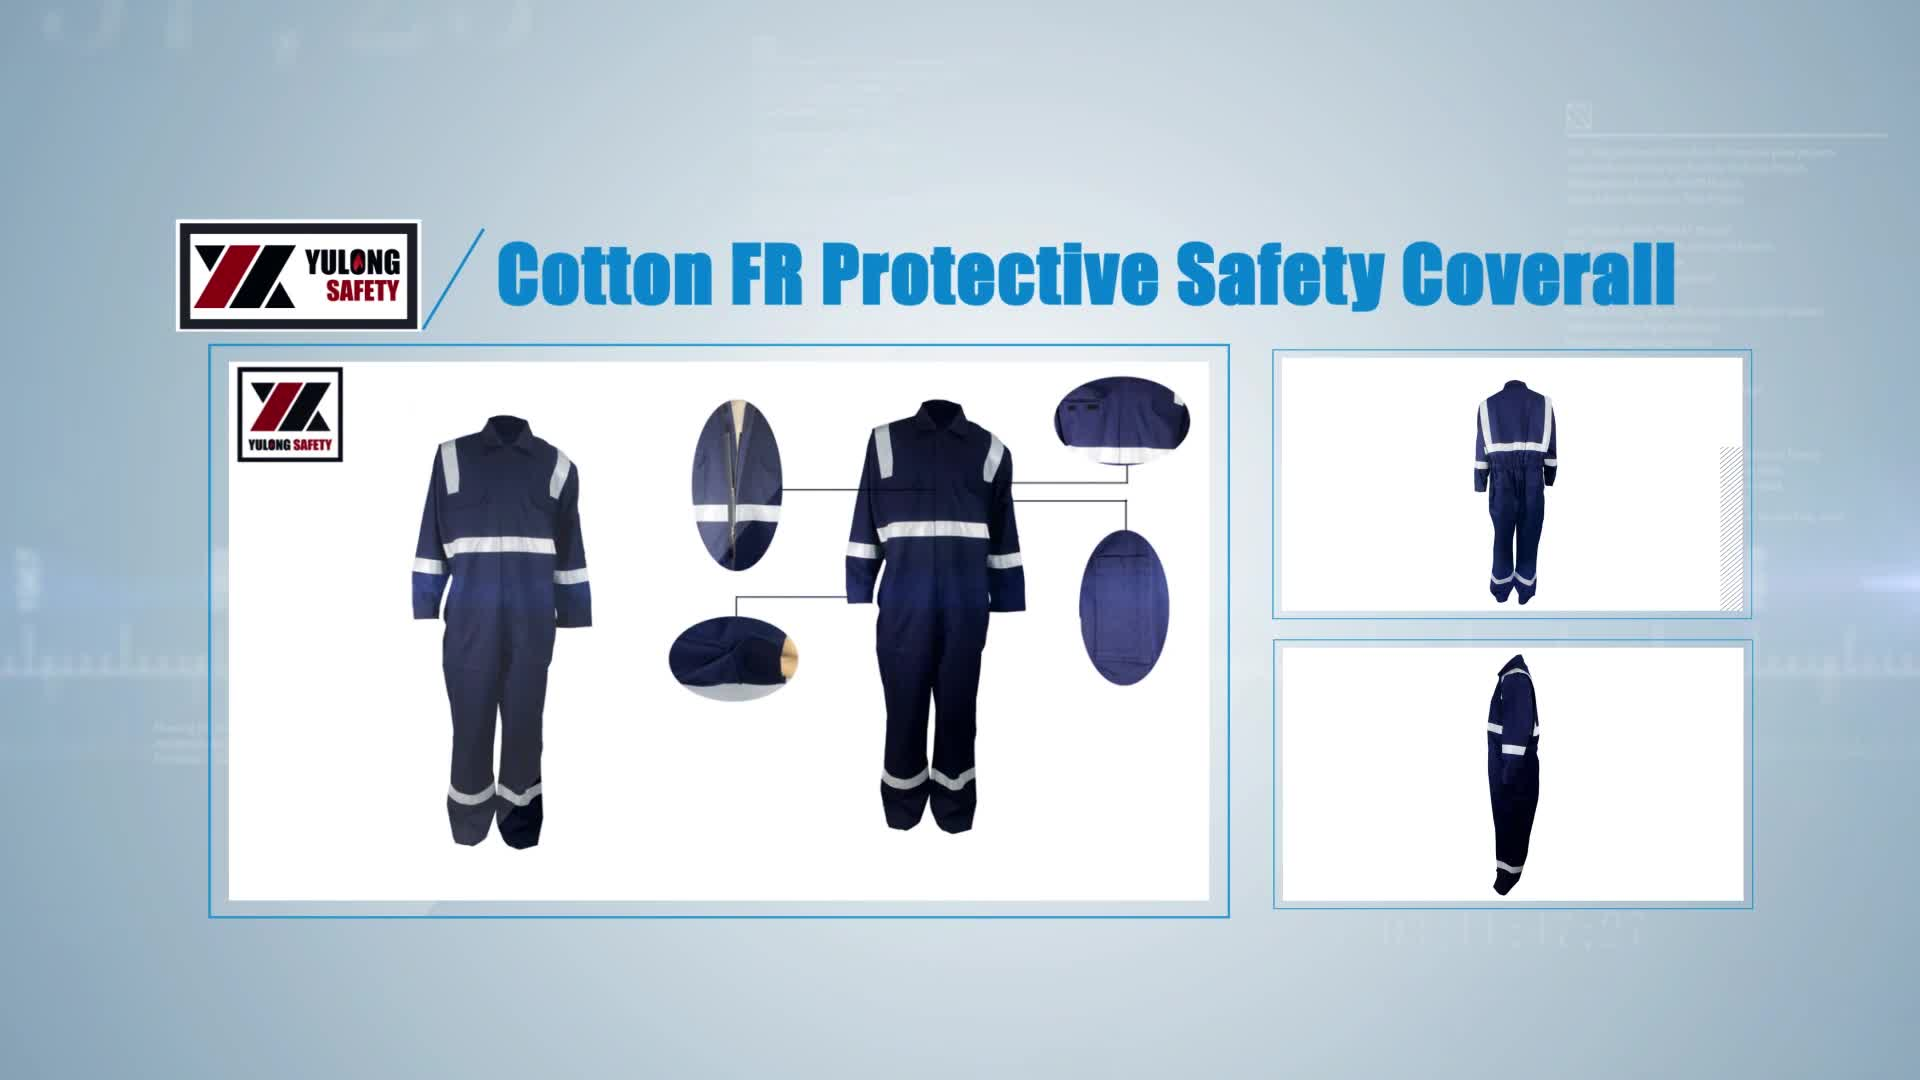 Nfpa 70e Acid Proof Work Electric Arc Safety Clothing